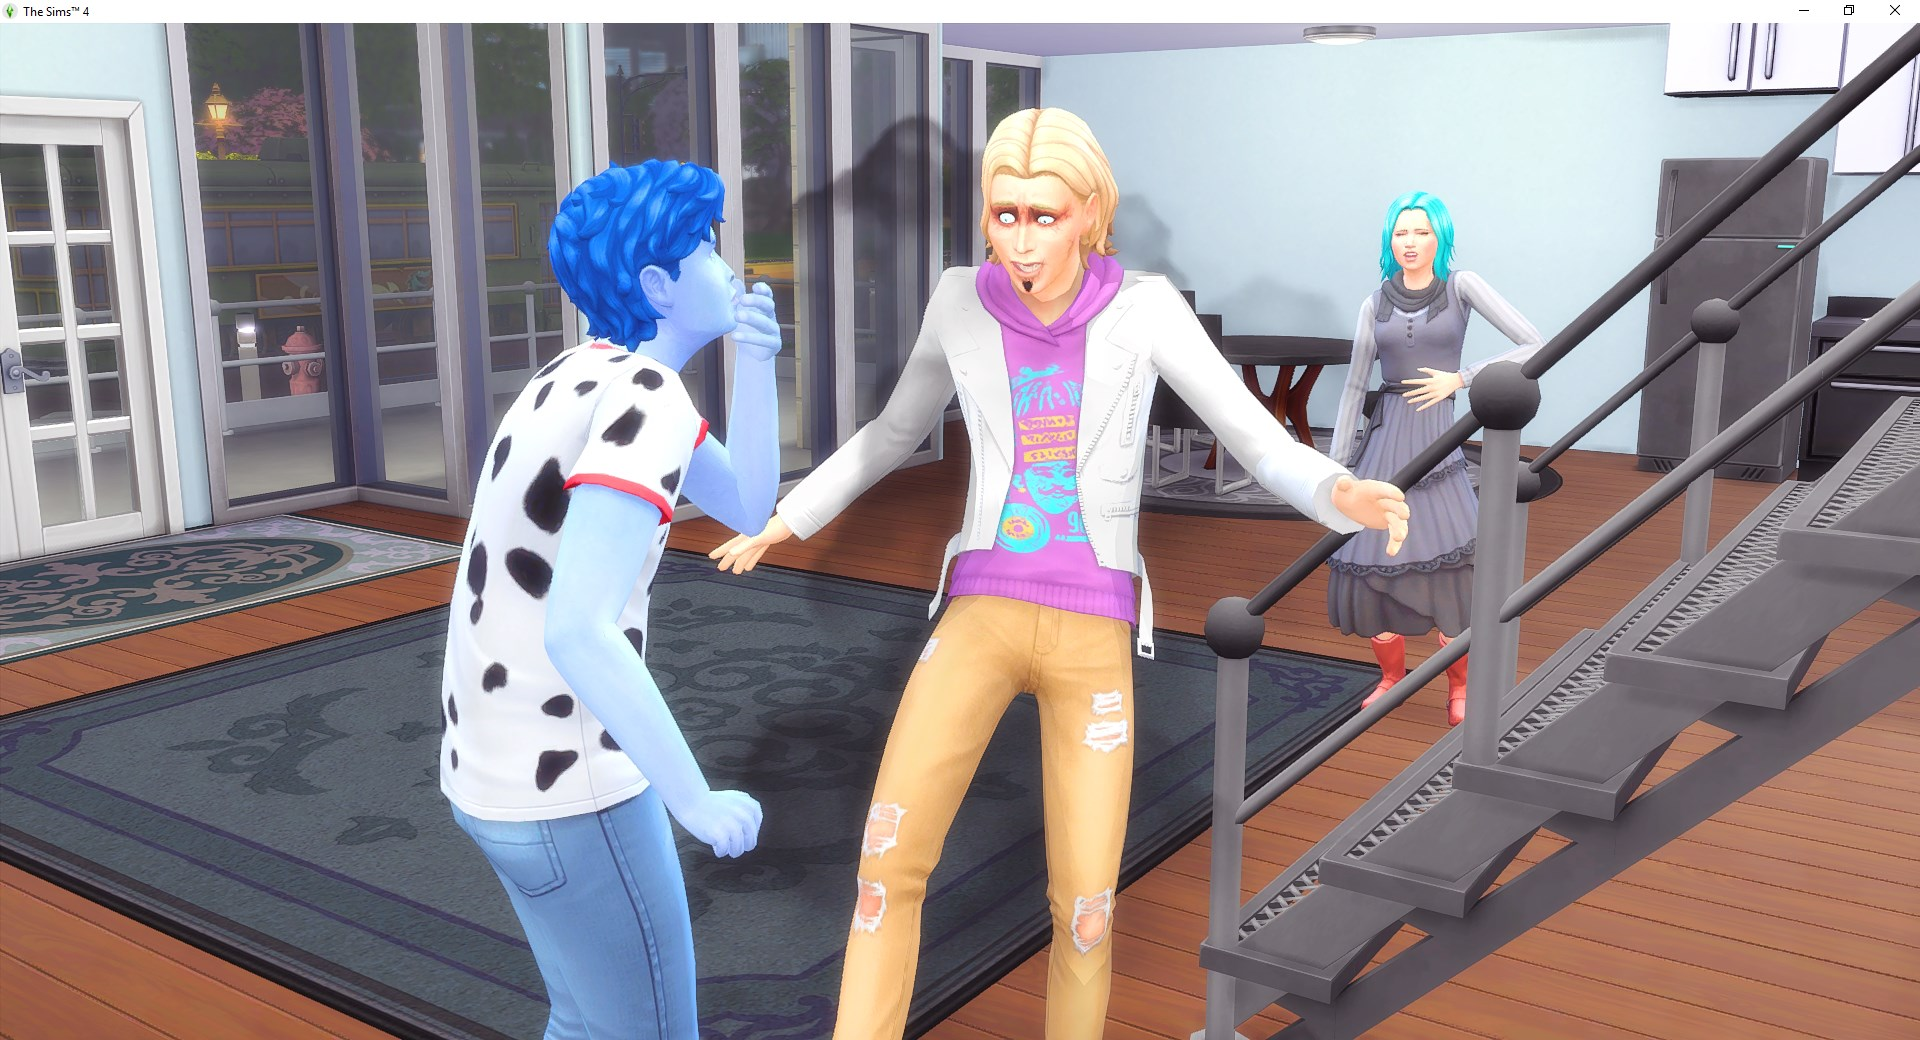 2019-10-27 13_27_24-The Sims™ 4